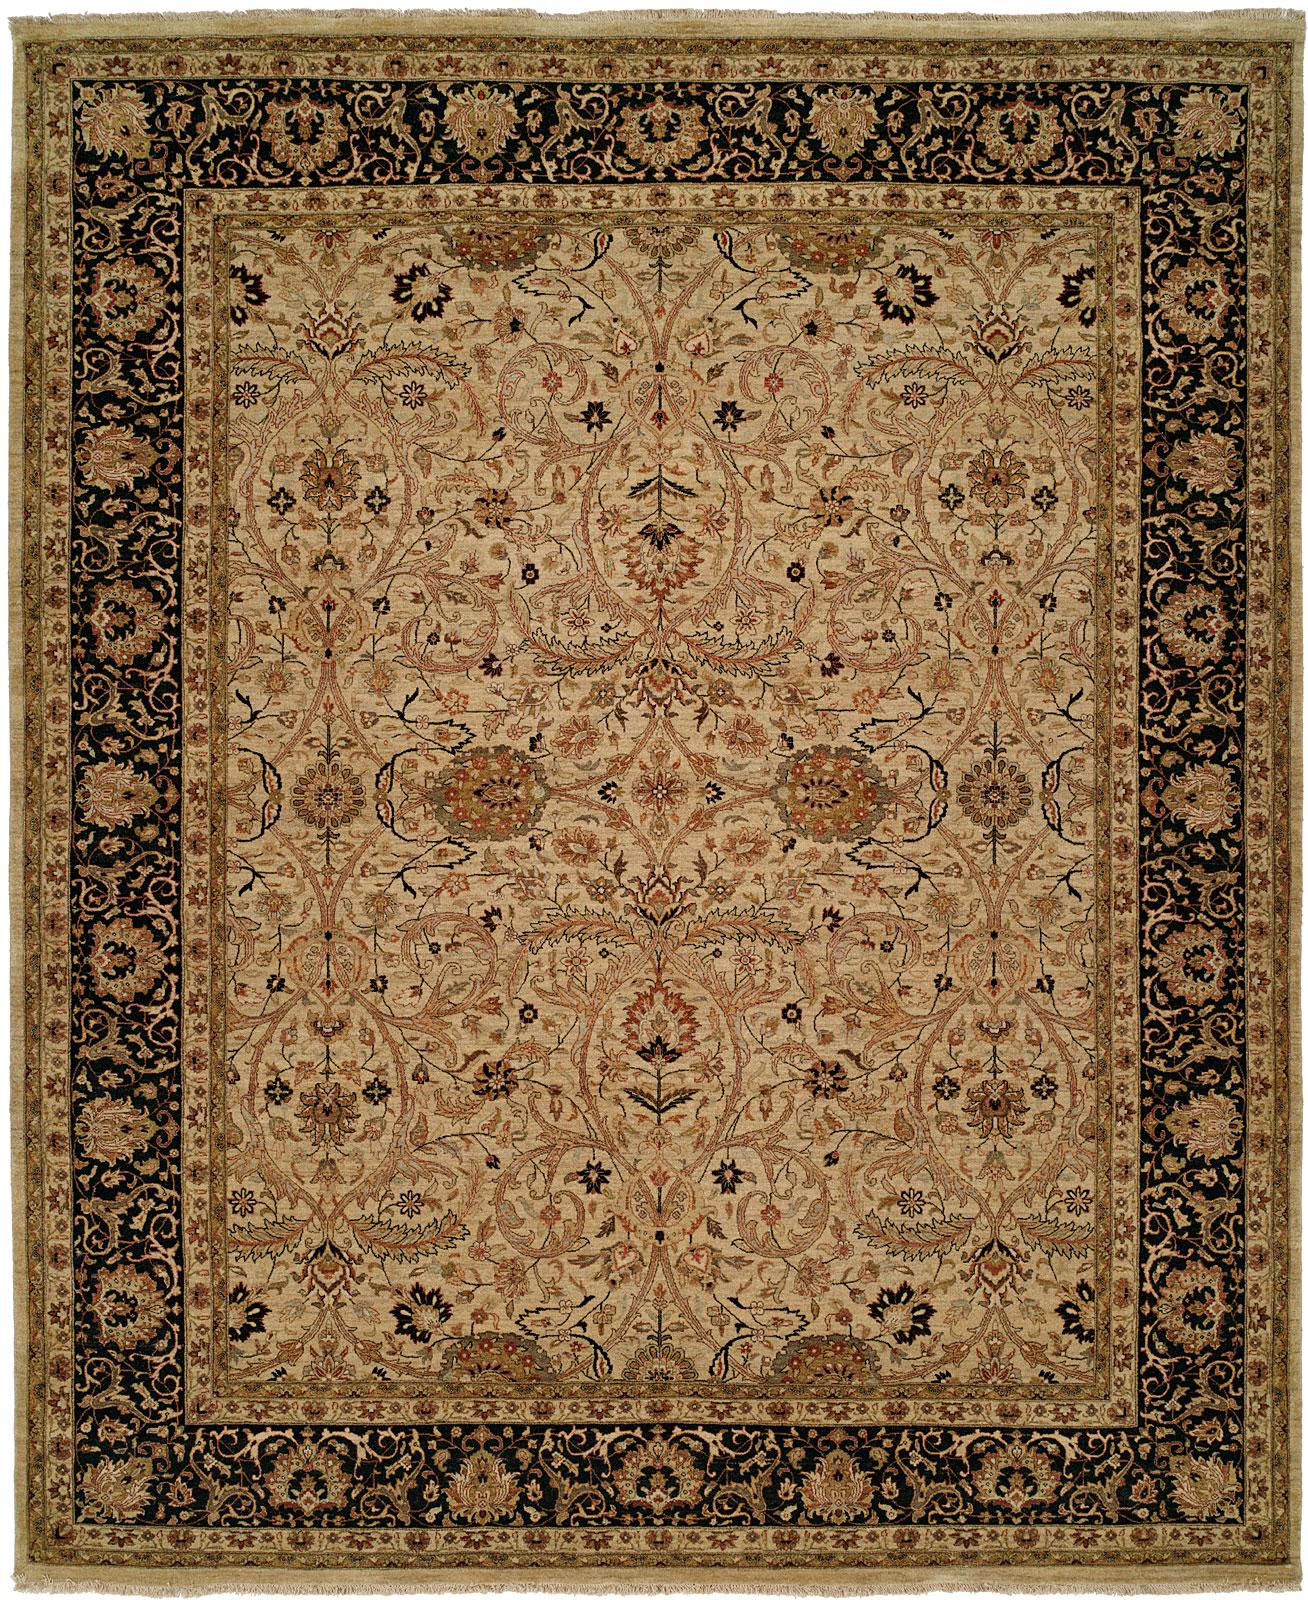 Rug: #001075 Retail: $10,064.00 Sale: $5,990.00 Size: 8' x 10' Color: Ivory/Black Made in India Hand Knotted Wool